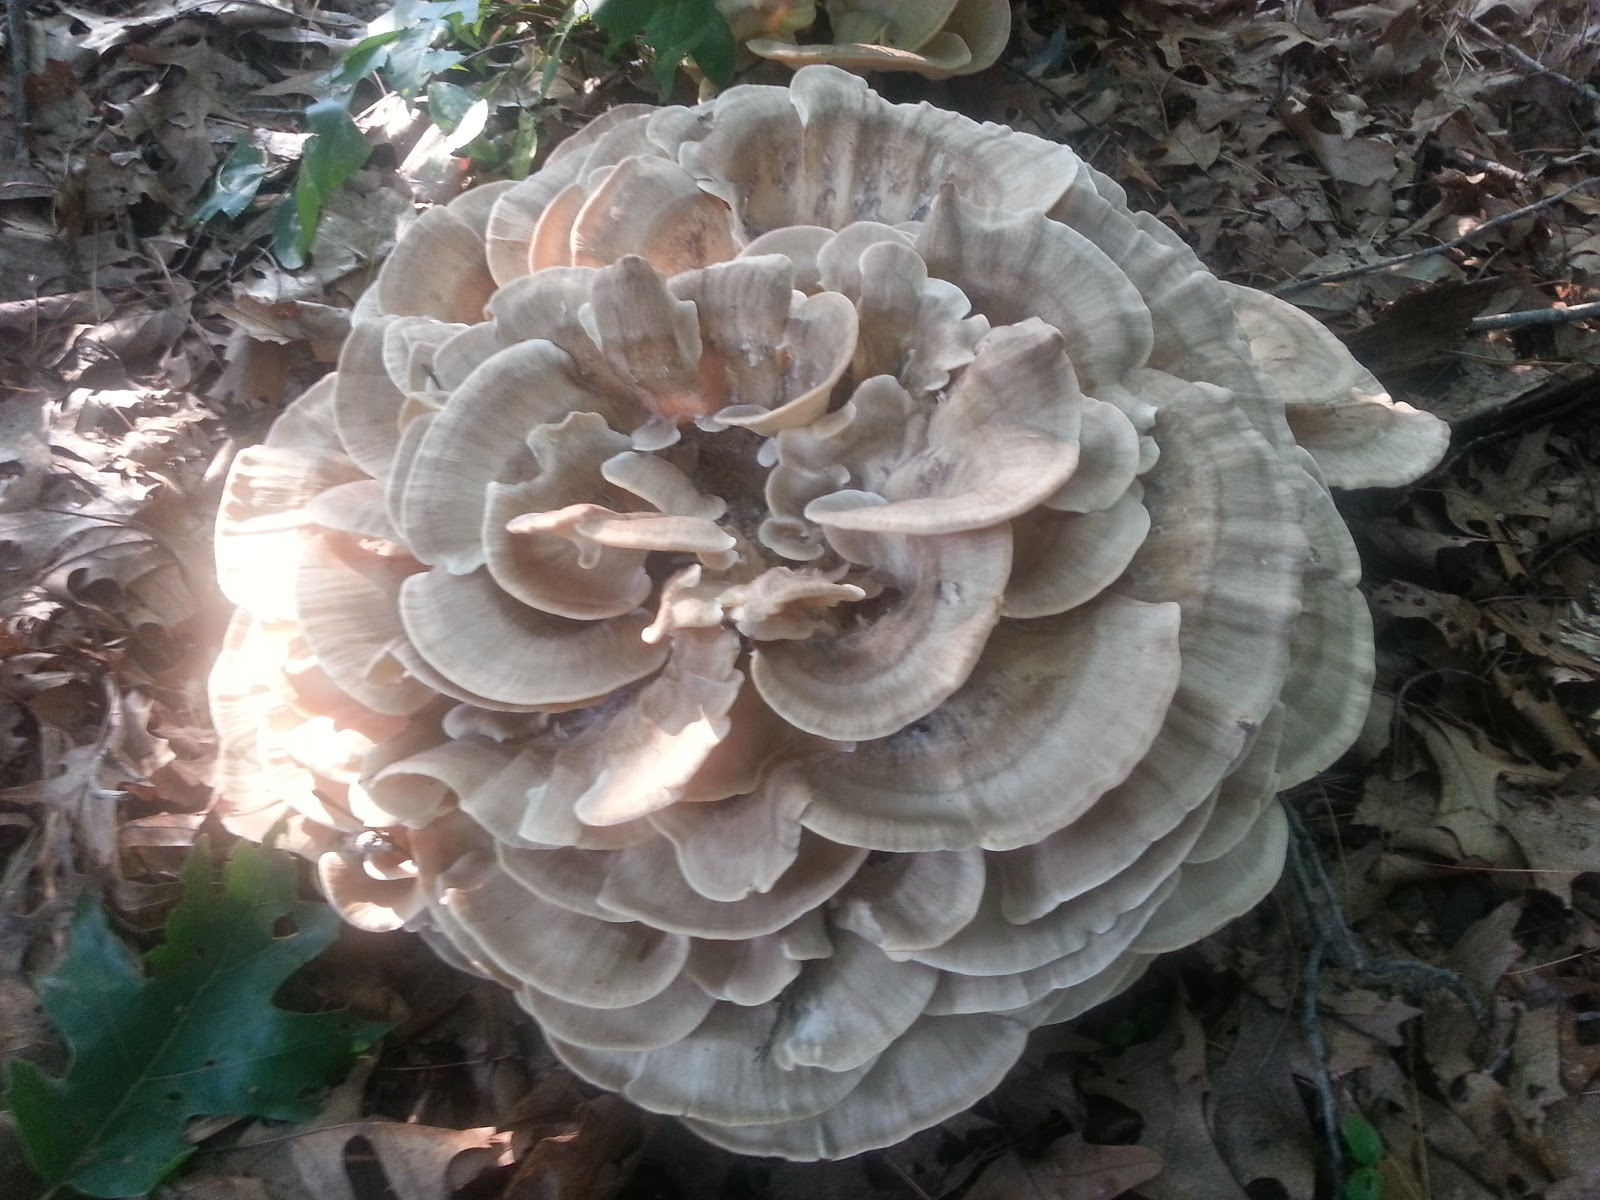 Black-staining Polypore